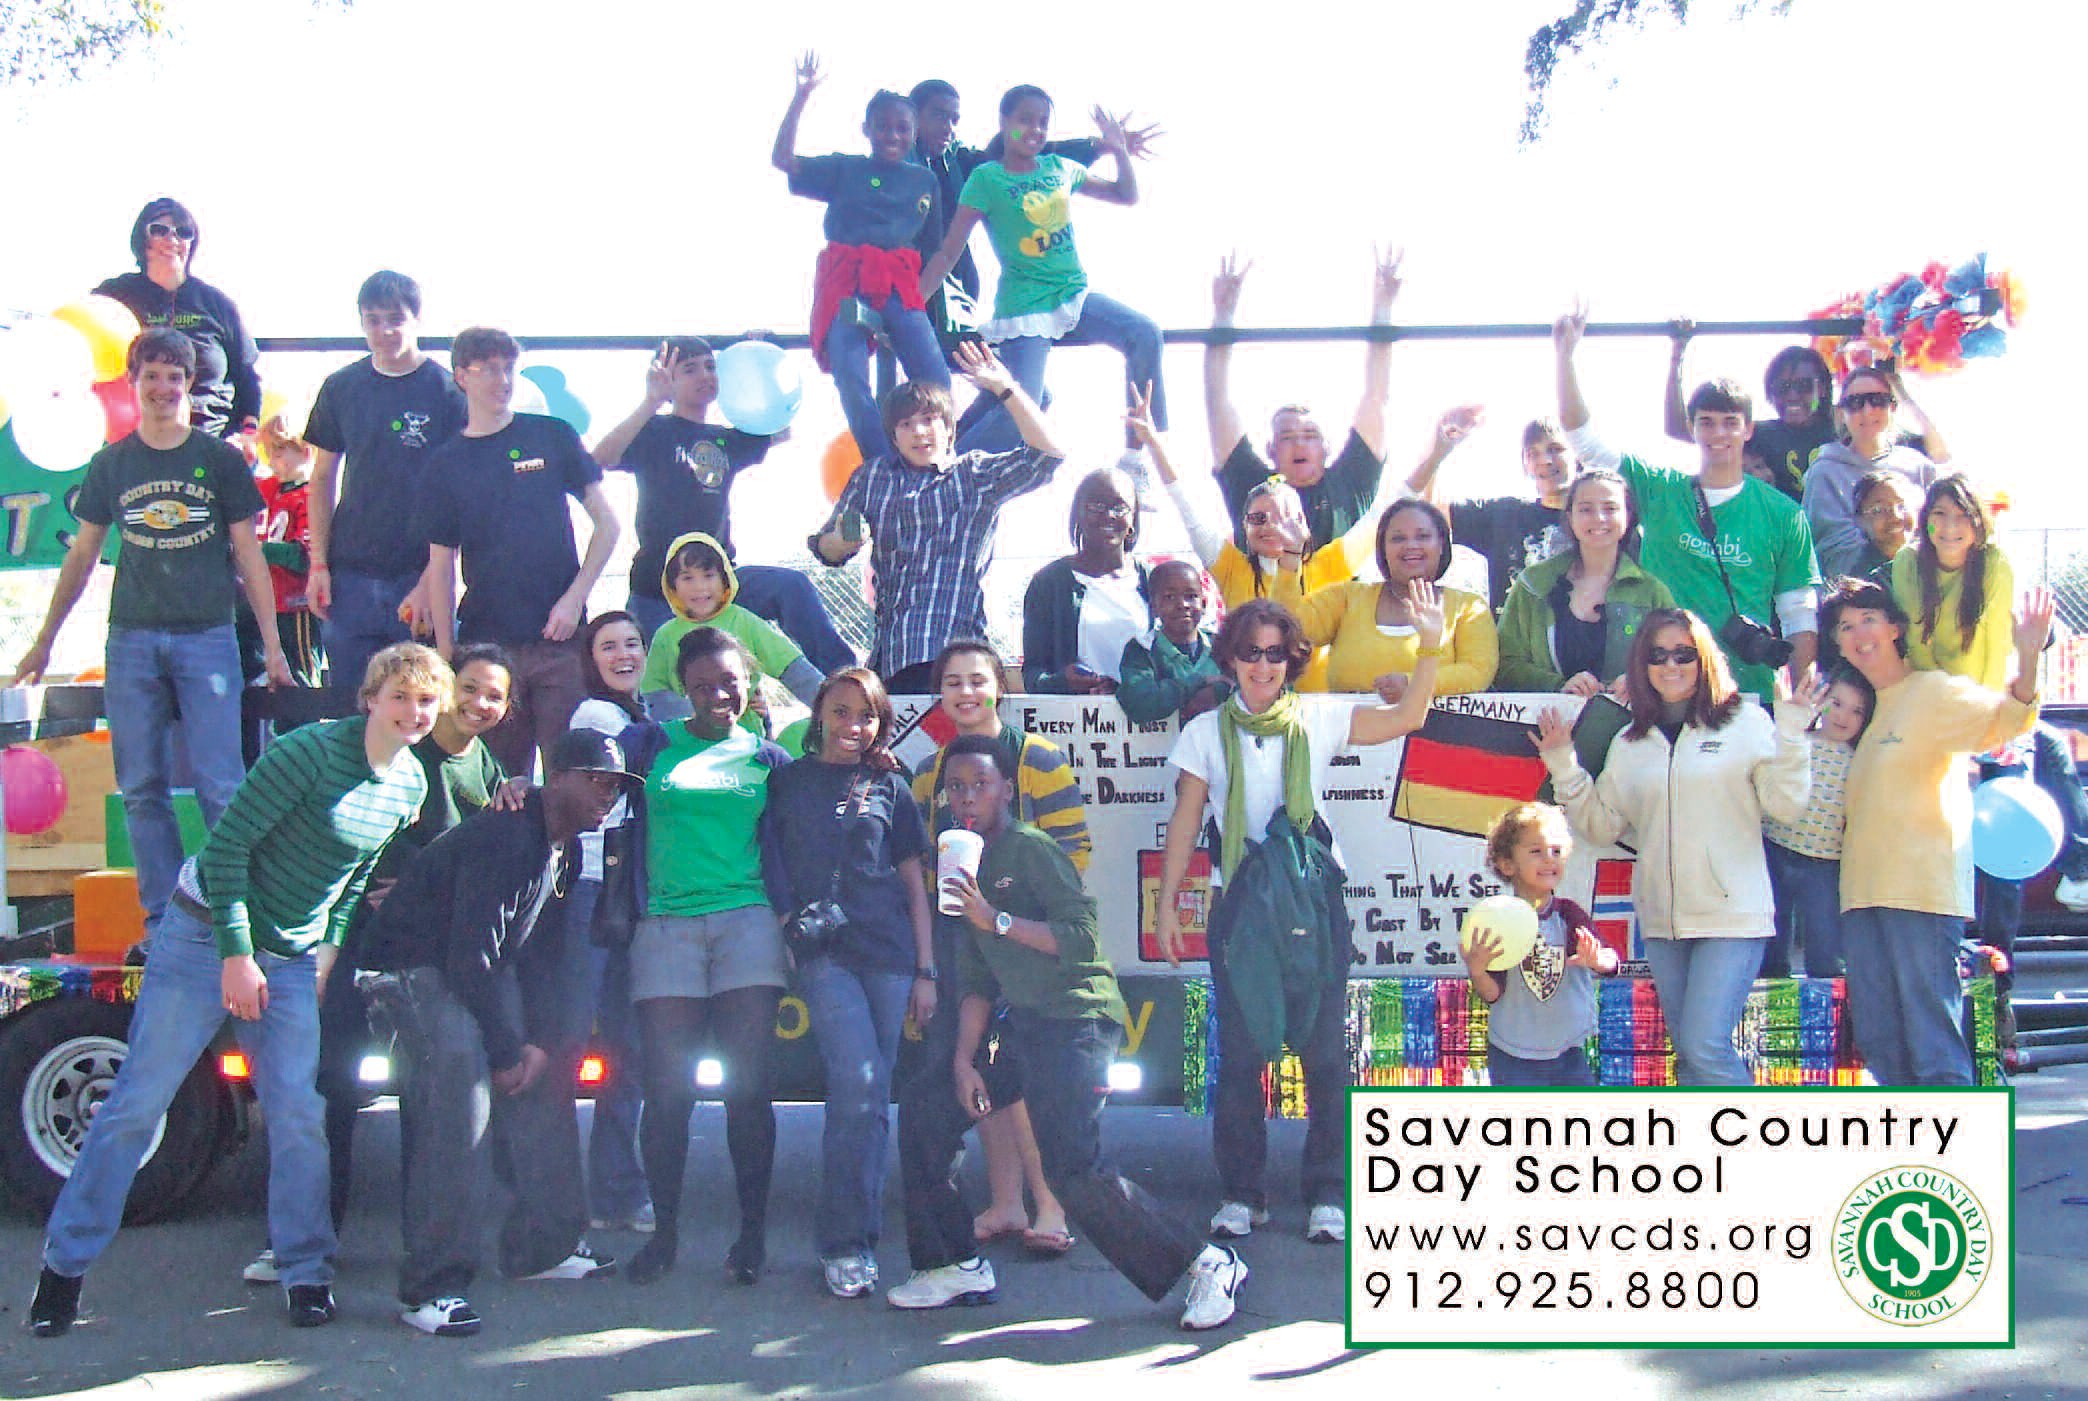 Savannah Country Day School walked away with the First Place Float Award for the float the school designed and placed in the Martin Luther King Day Parade held last Monday. Pictured above are students and faculty posing by the float. Congratulations to the Savannah Country Day School!